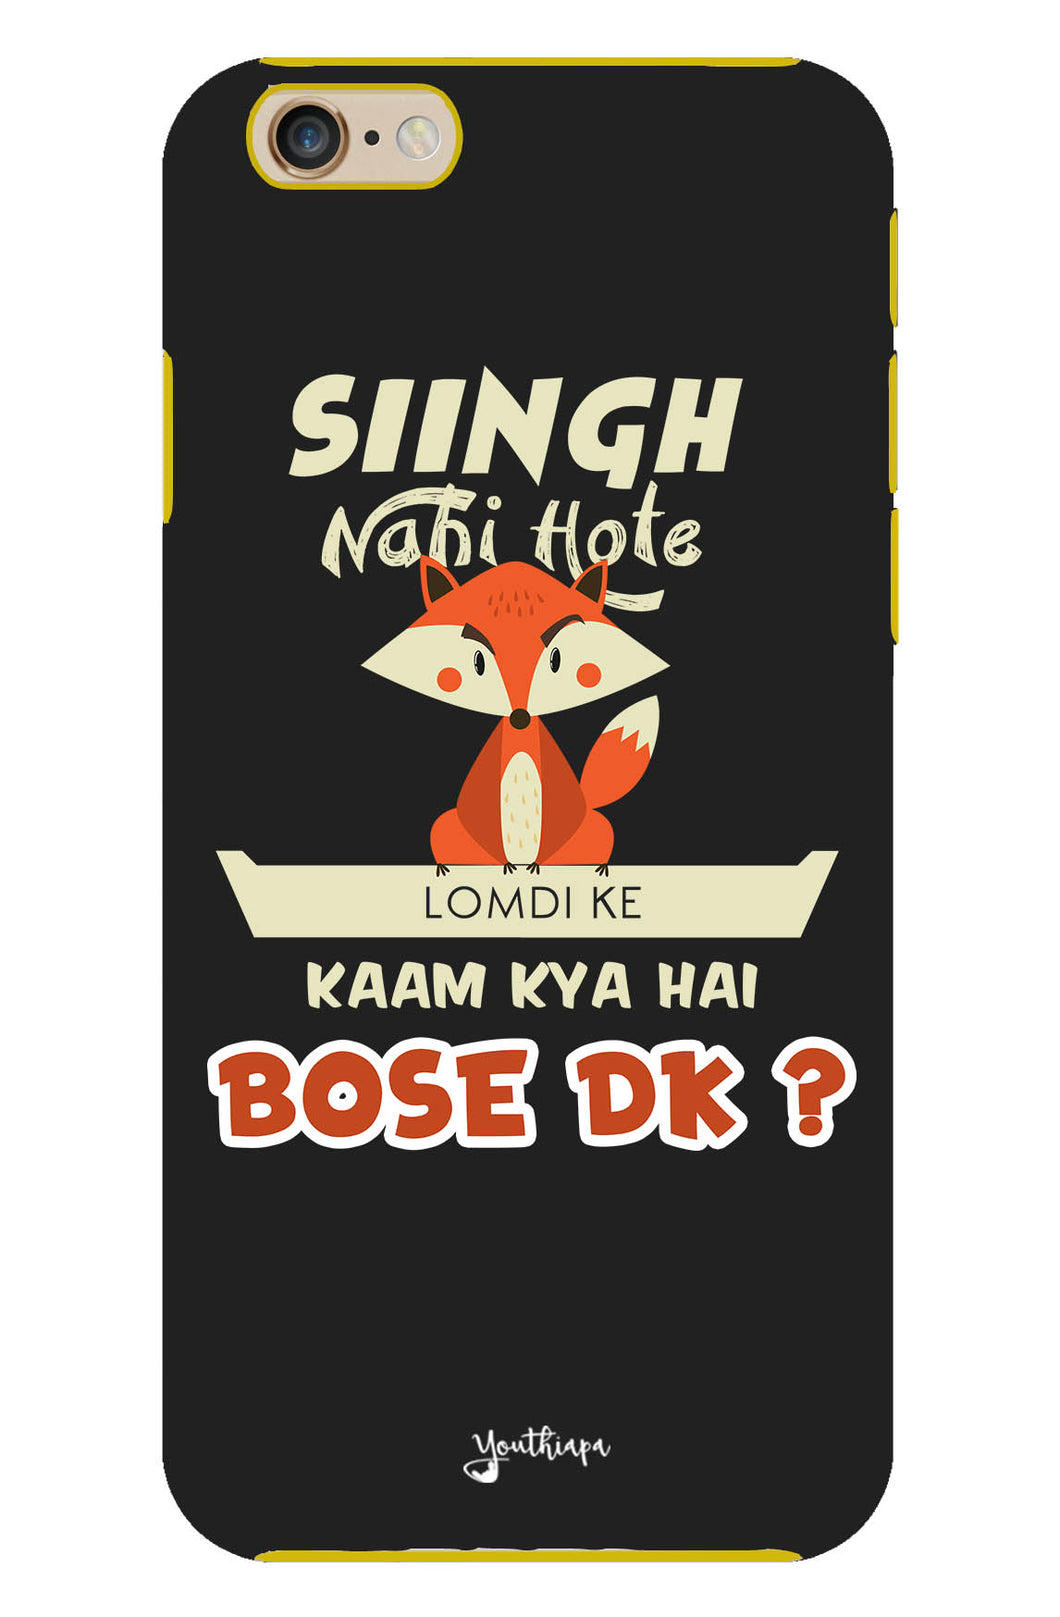 Singh Nahi Hote for I phone 6/6s